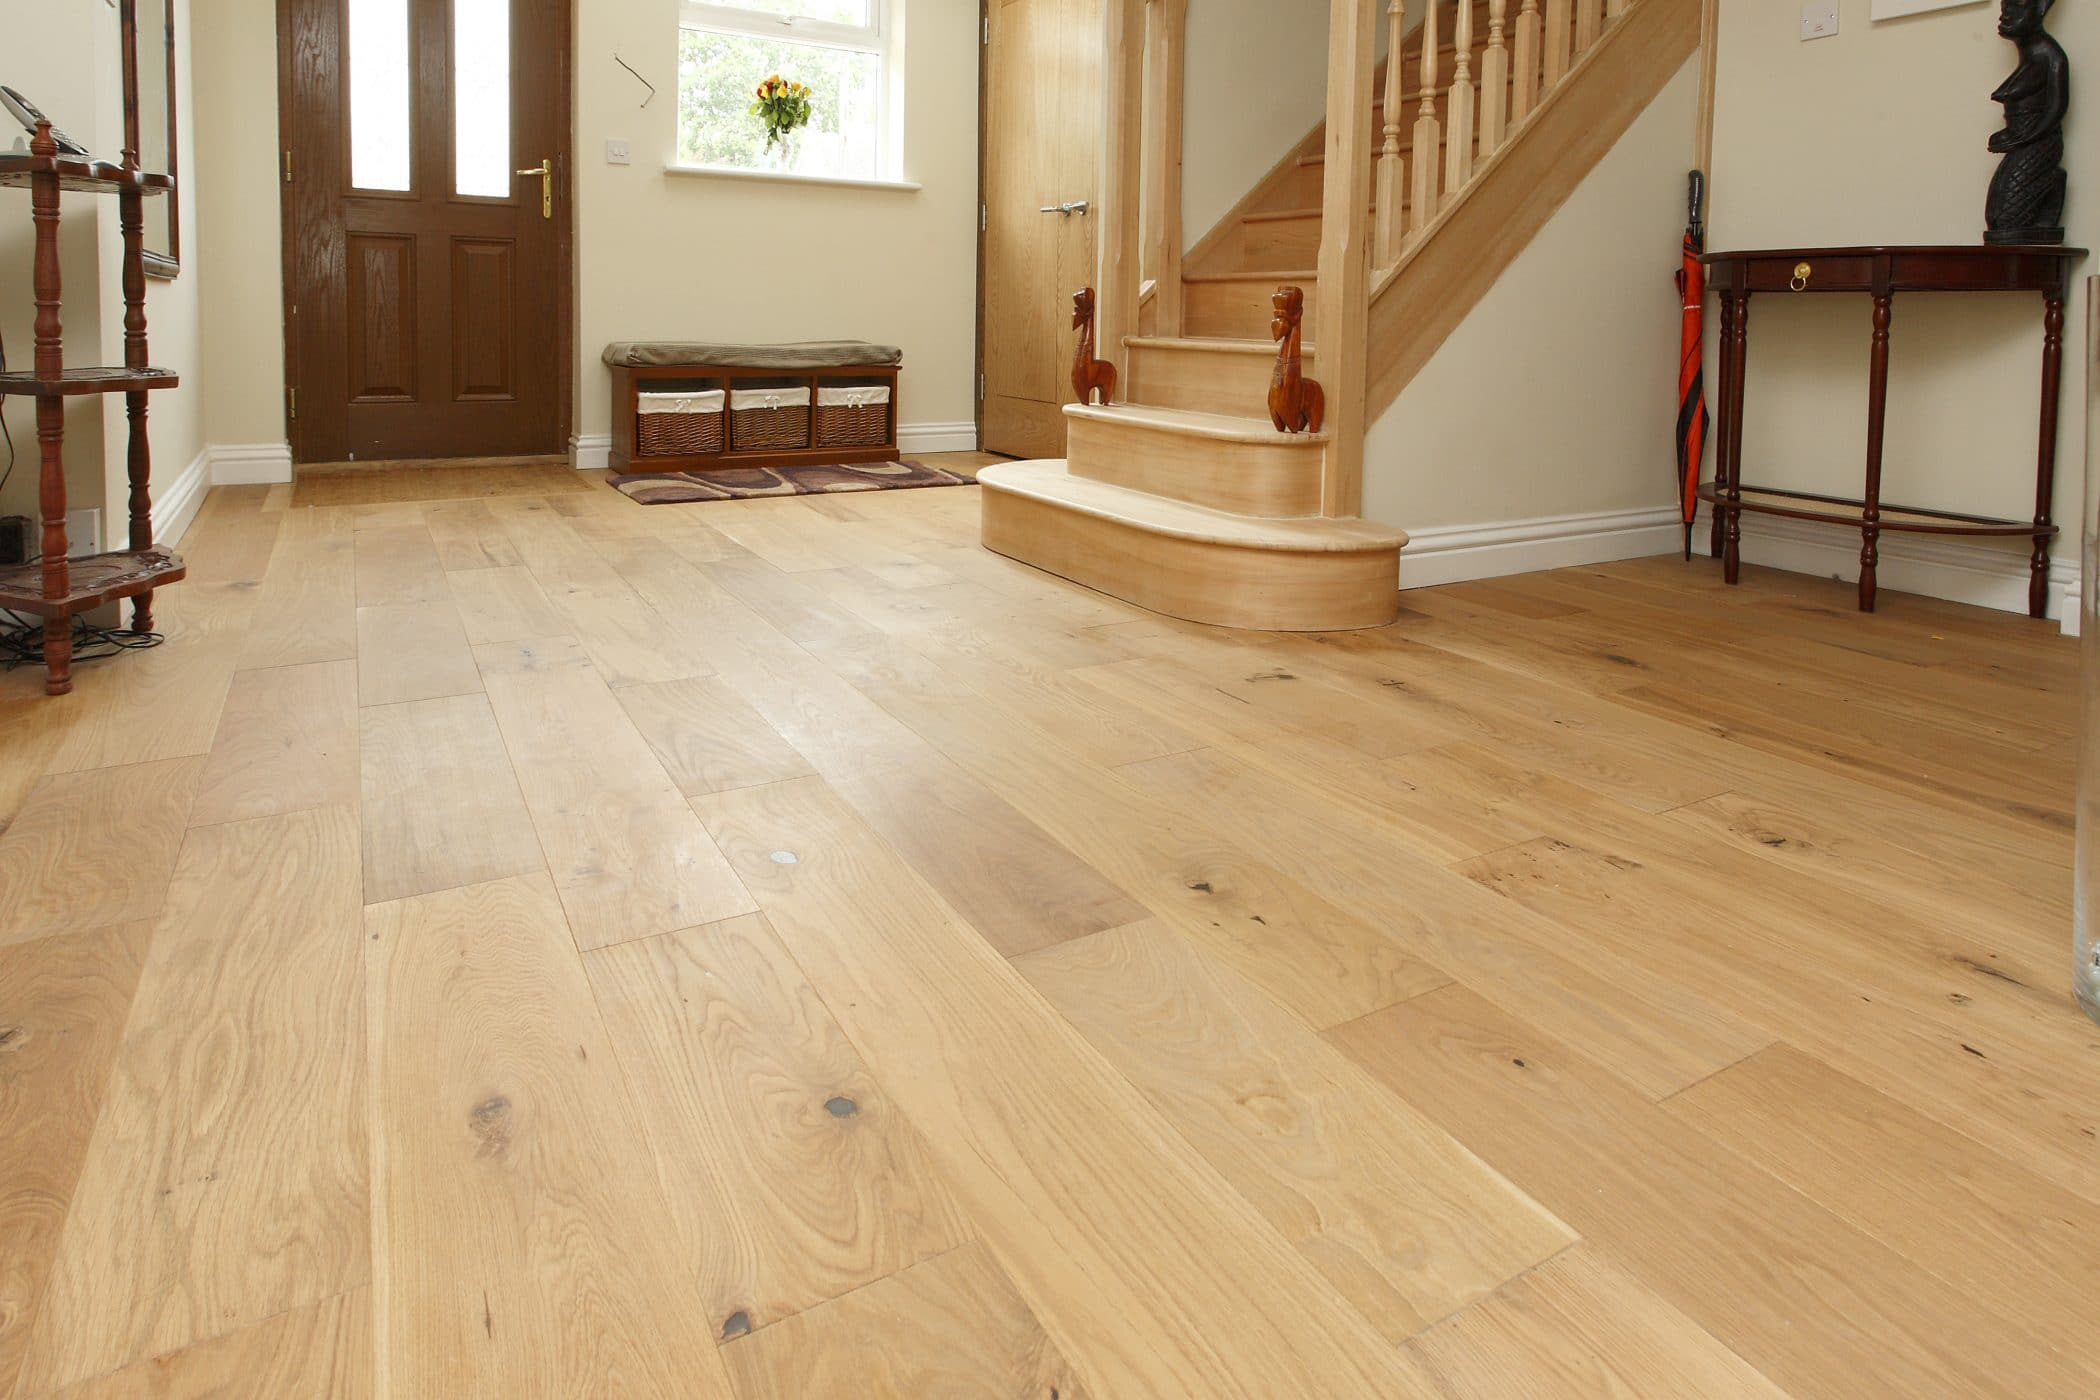 UK Wood Flooring - How to Create an Entrance!